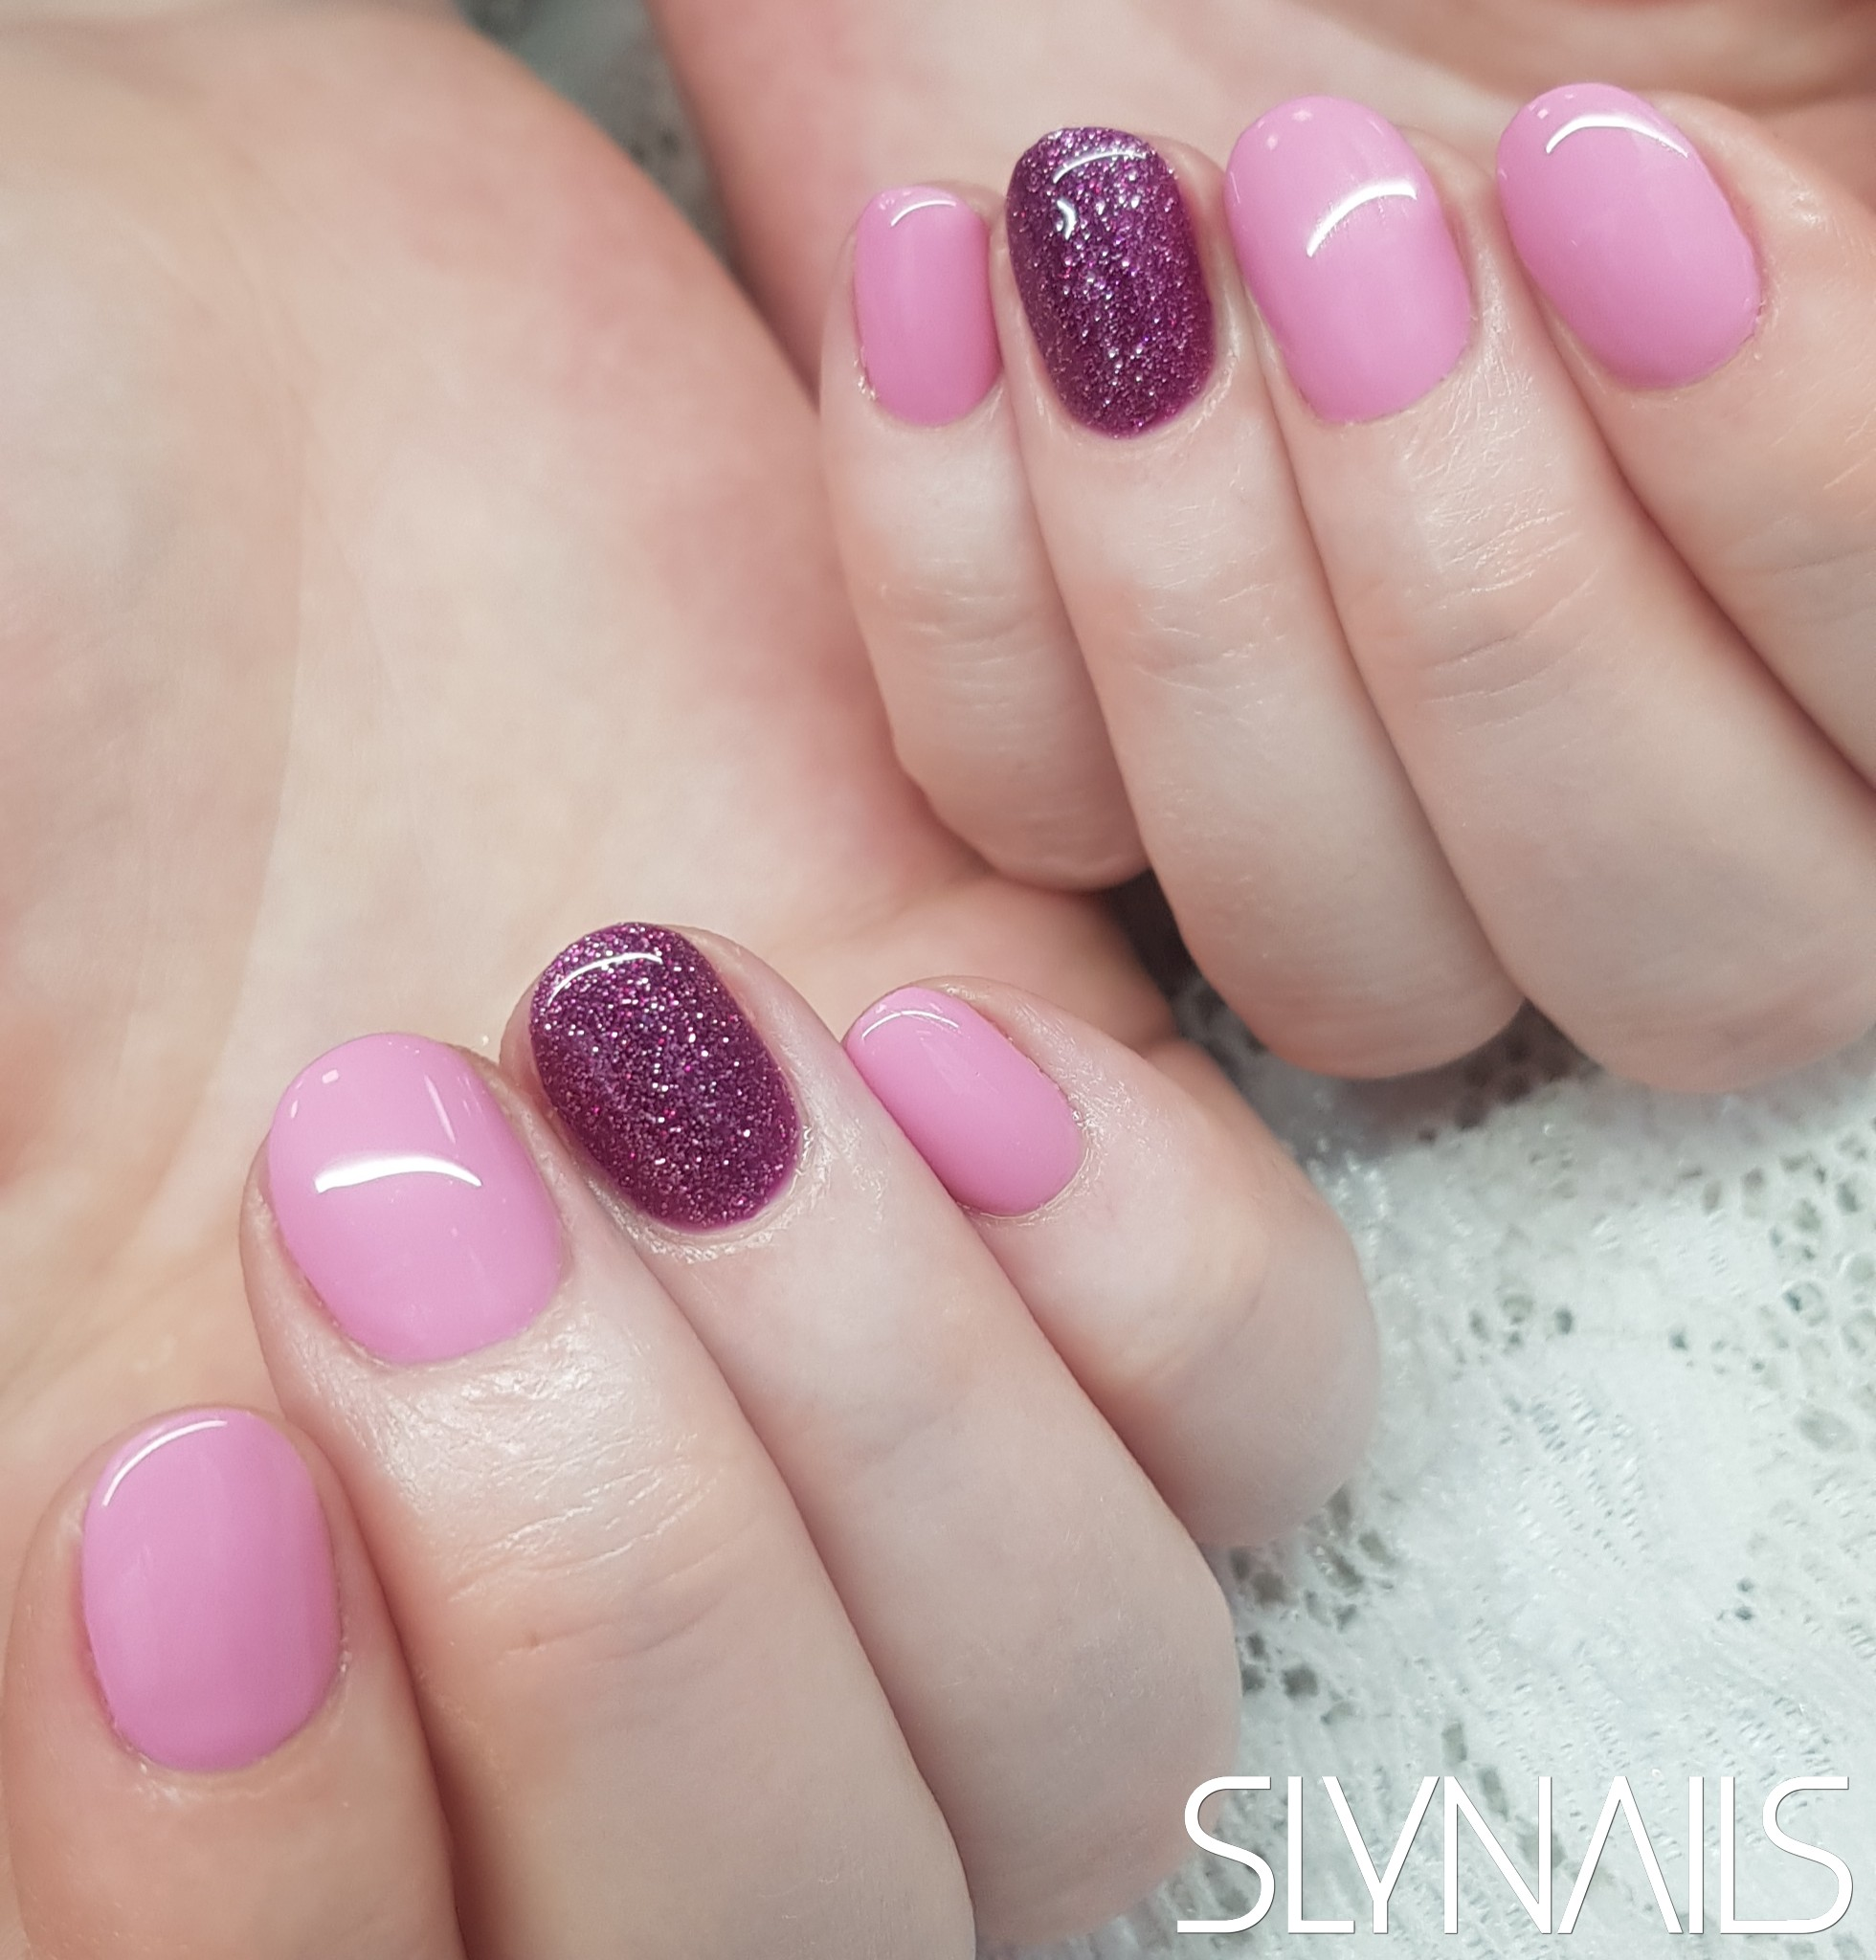 Gel-lac (gel polish), Pink, Purple, One color, Rounded, Without decoration